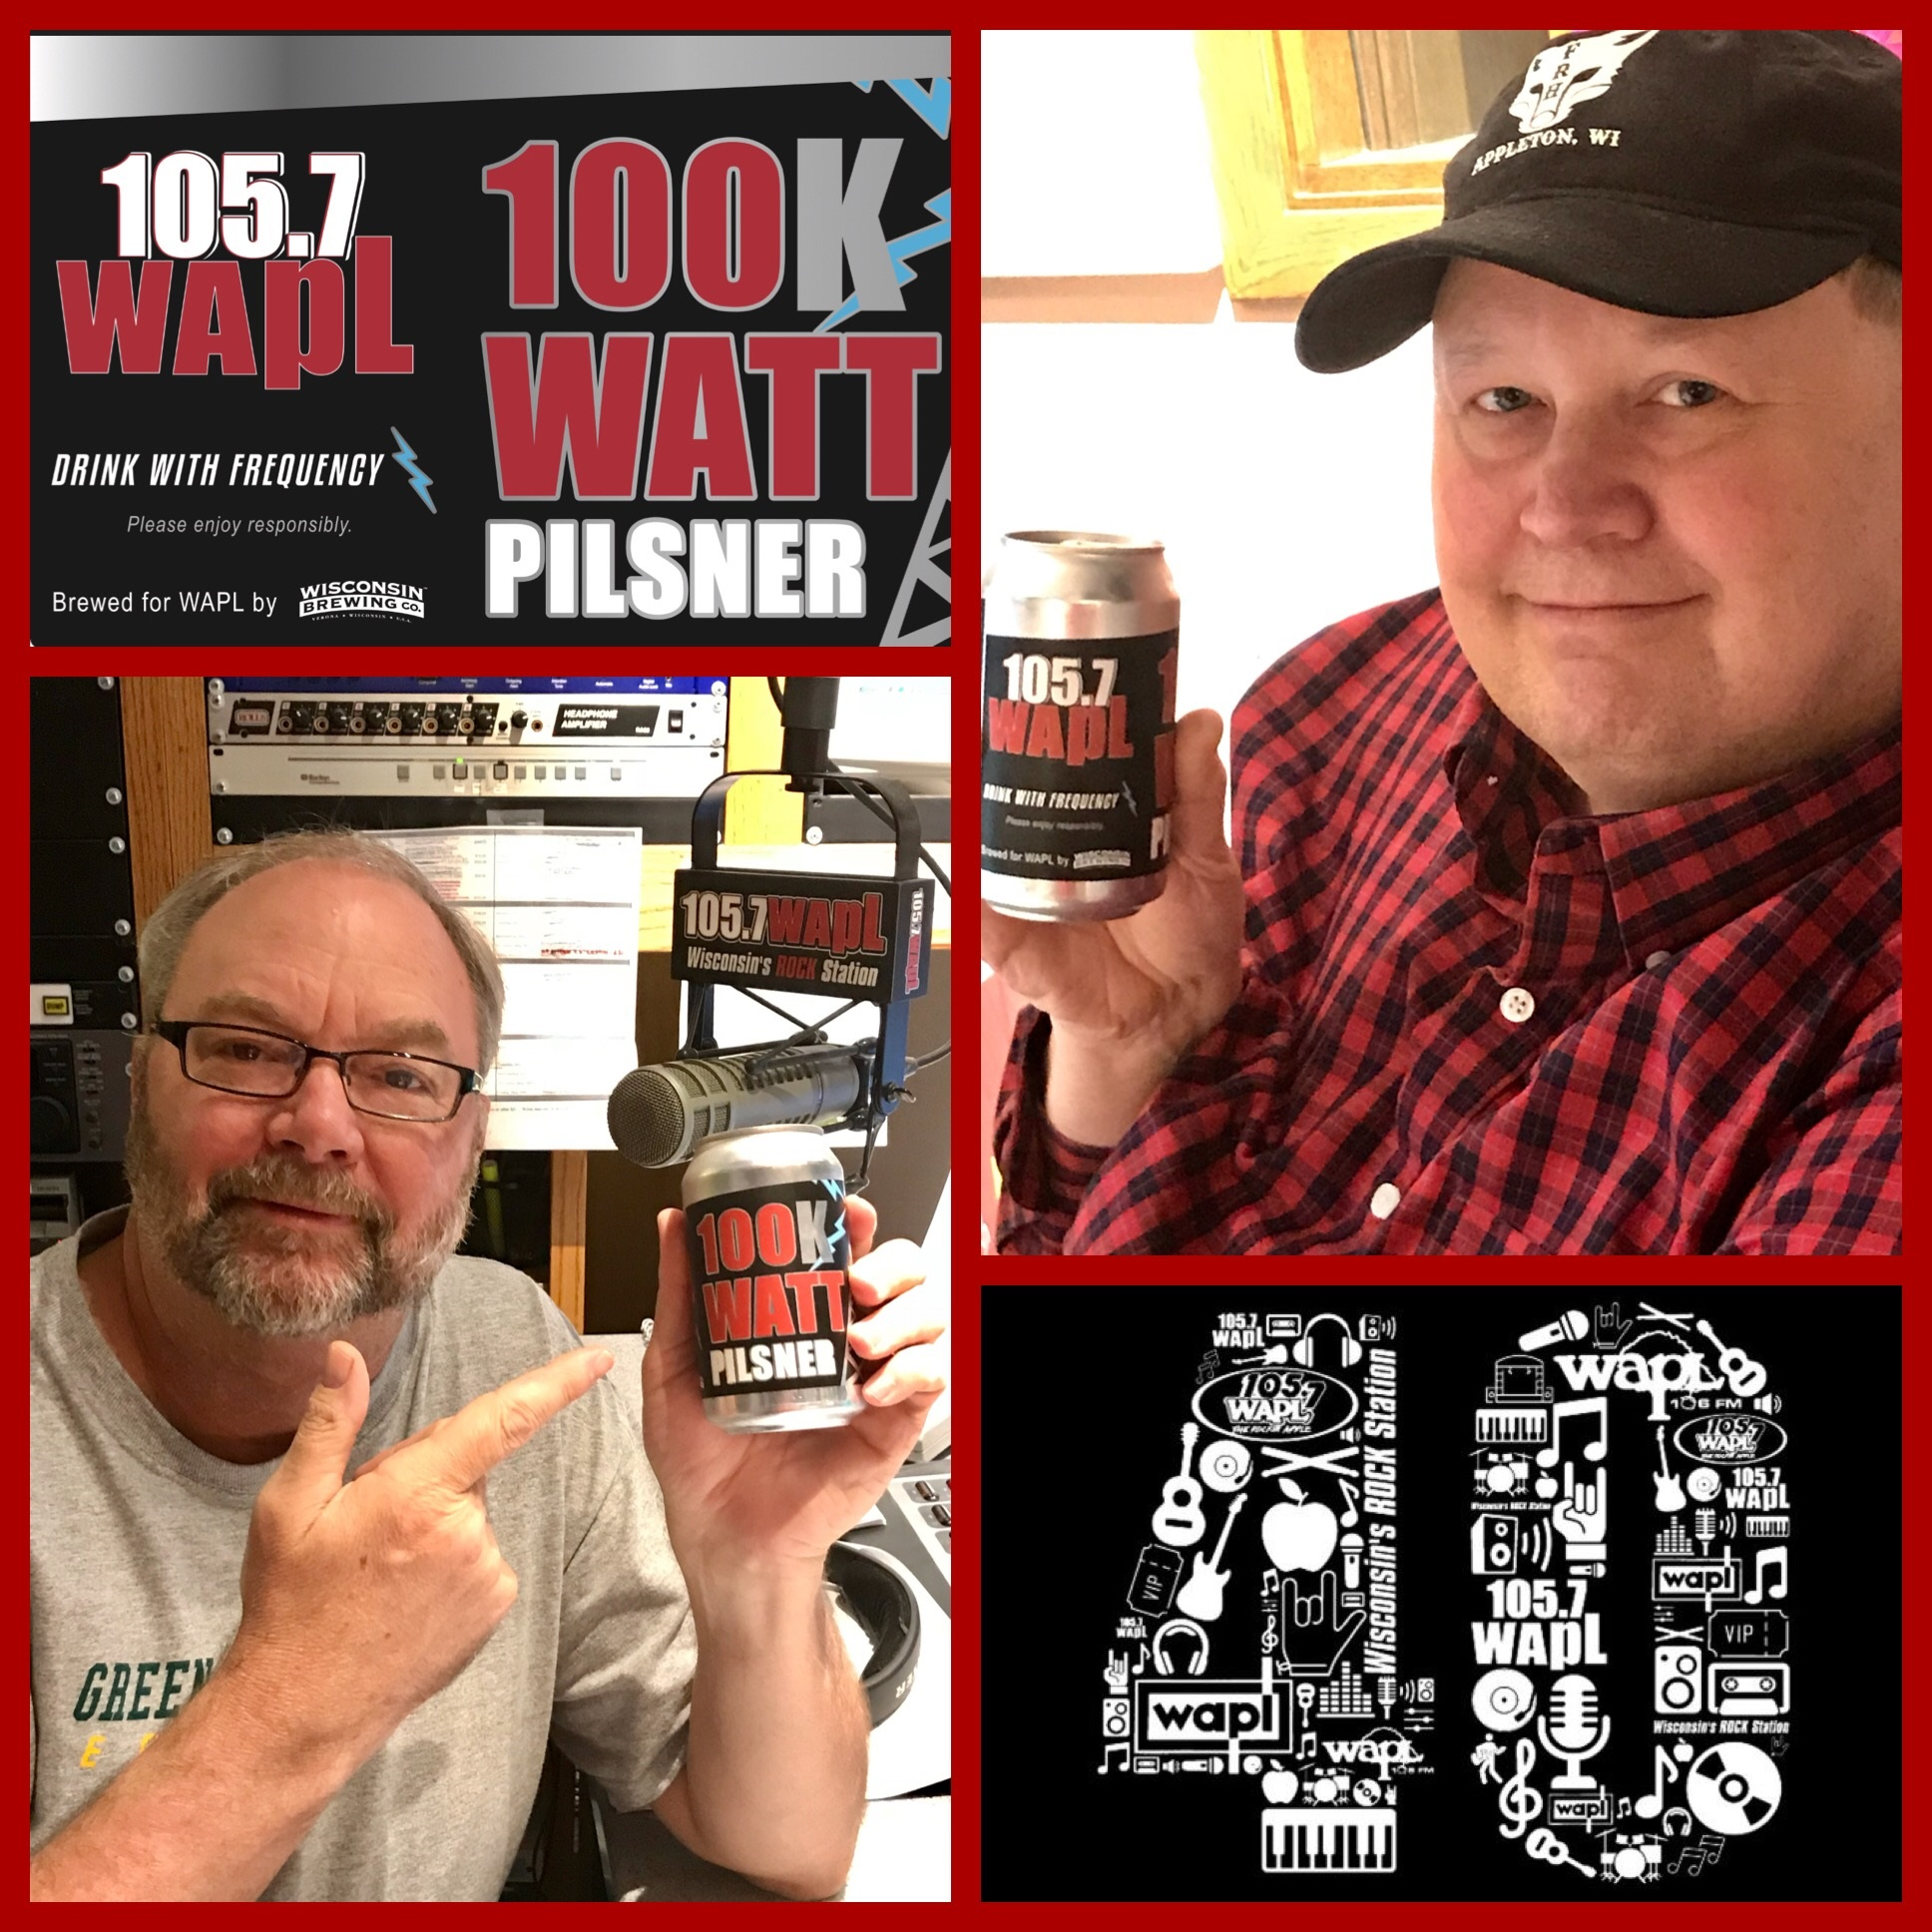 Rick and Len Approve of the New WAPL 100K Watt Pilsner